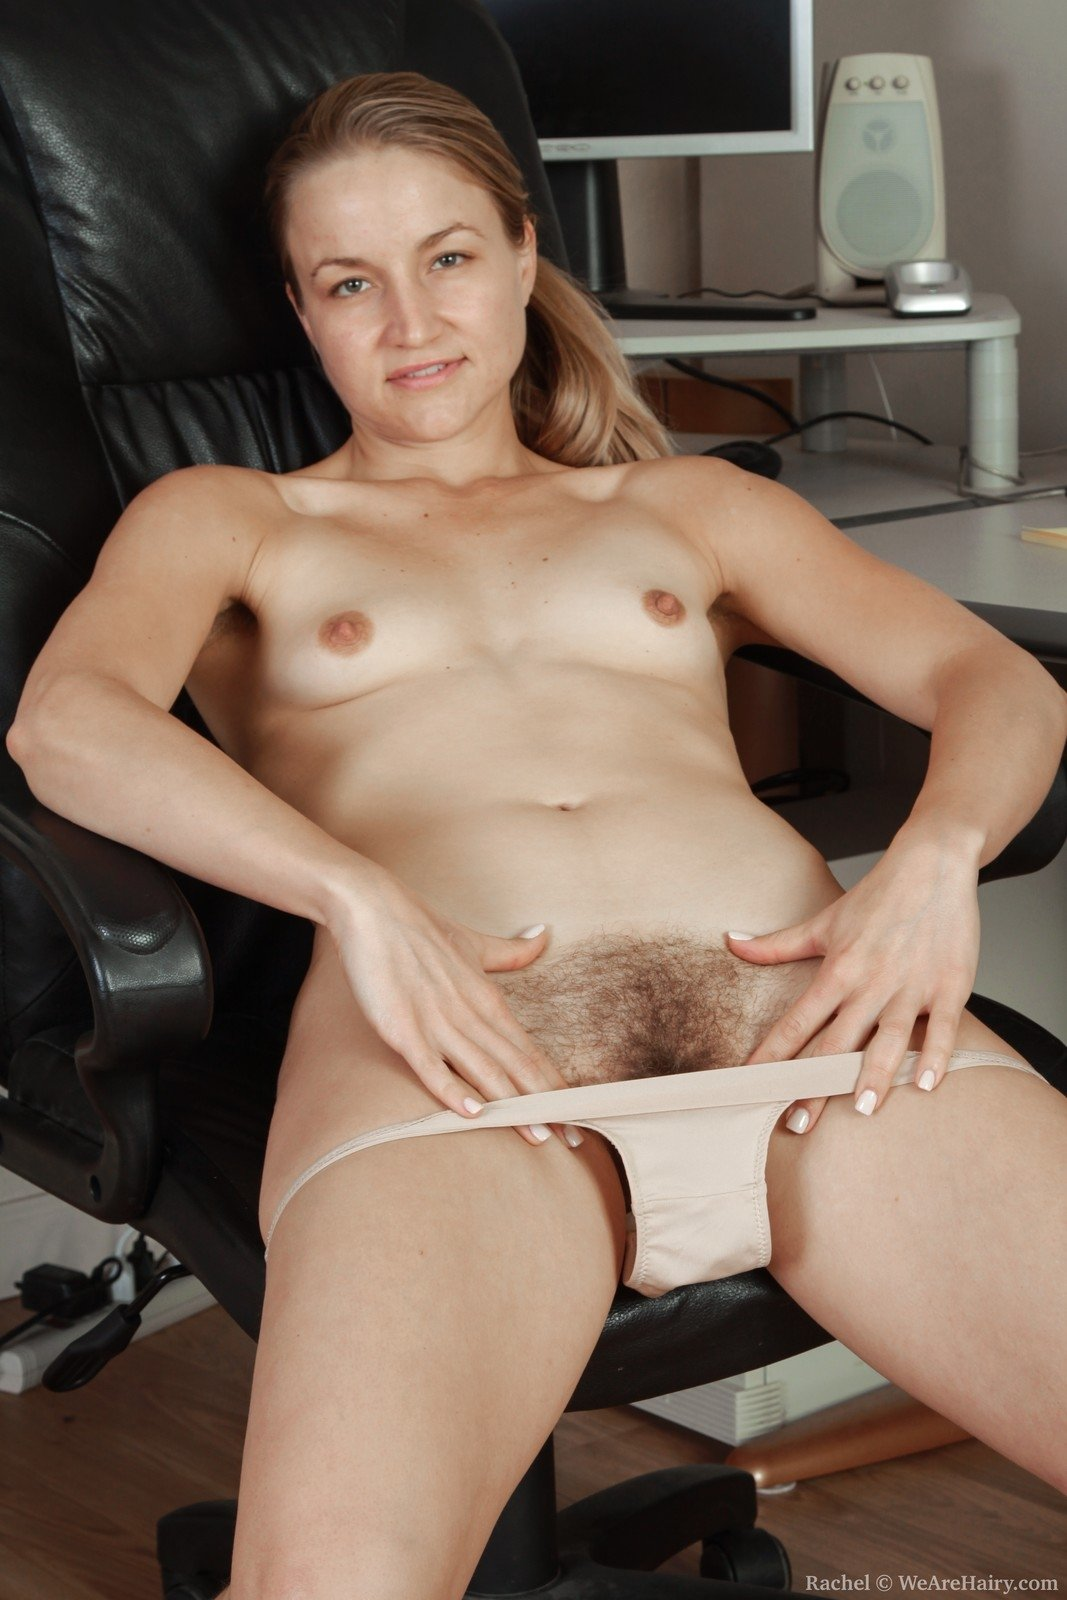 Rachel Sits In Her Office Chair Bored Without Any Work To -3755